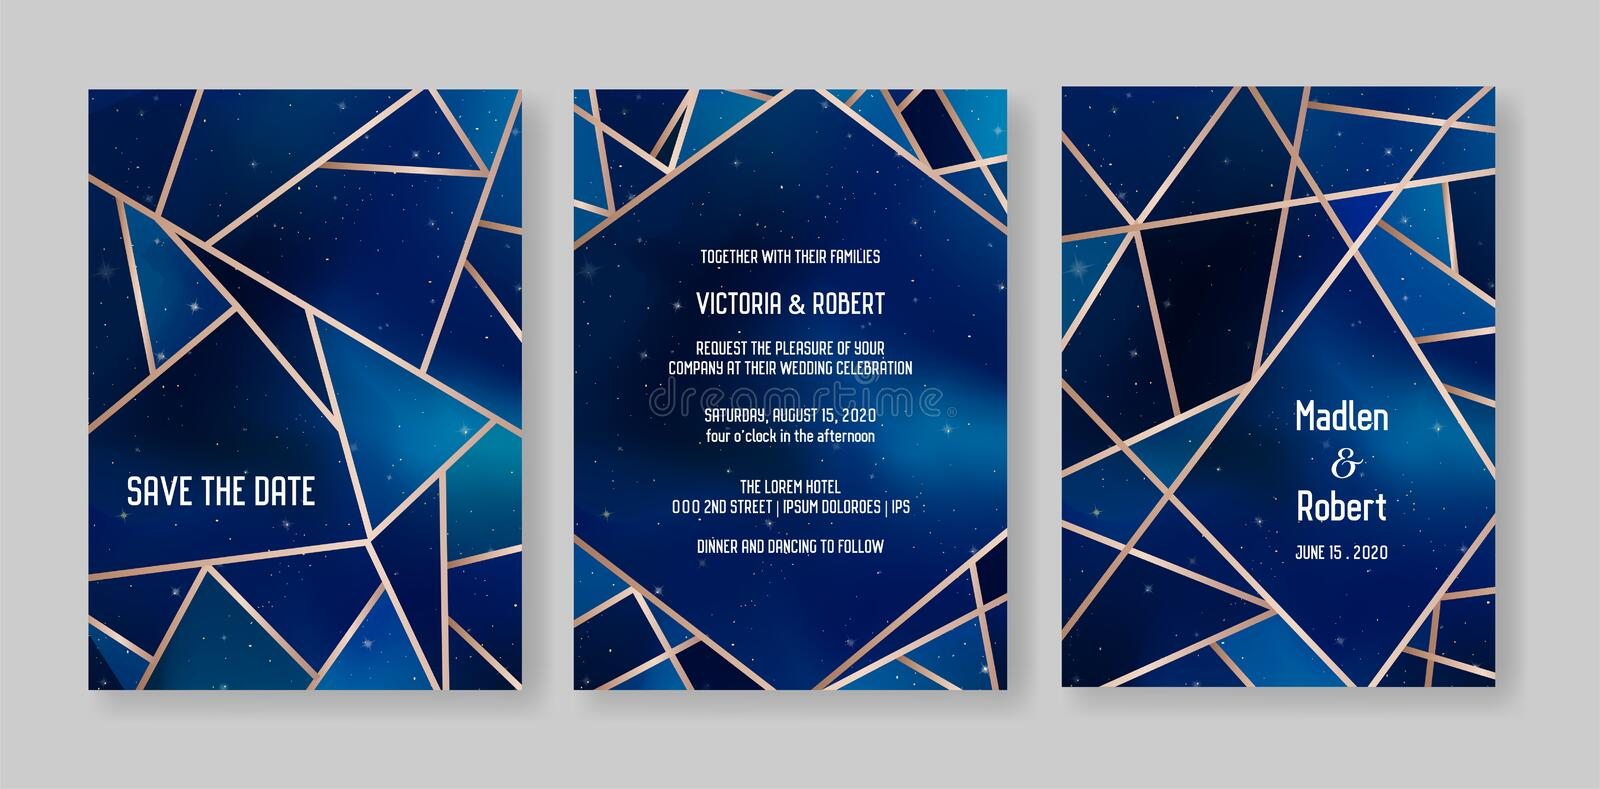 Starry Night Sky Trendy Wedding Invitation Card Set, Save the Date Celestial Template of Galaxy, Space, Stars. Illustration in vector royalty free illustration